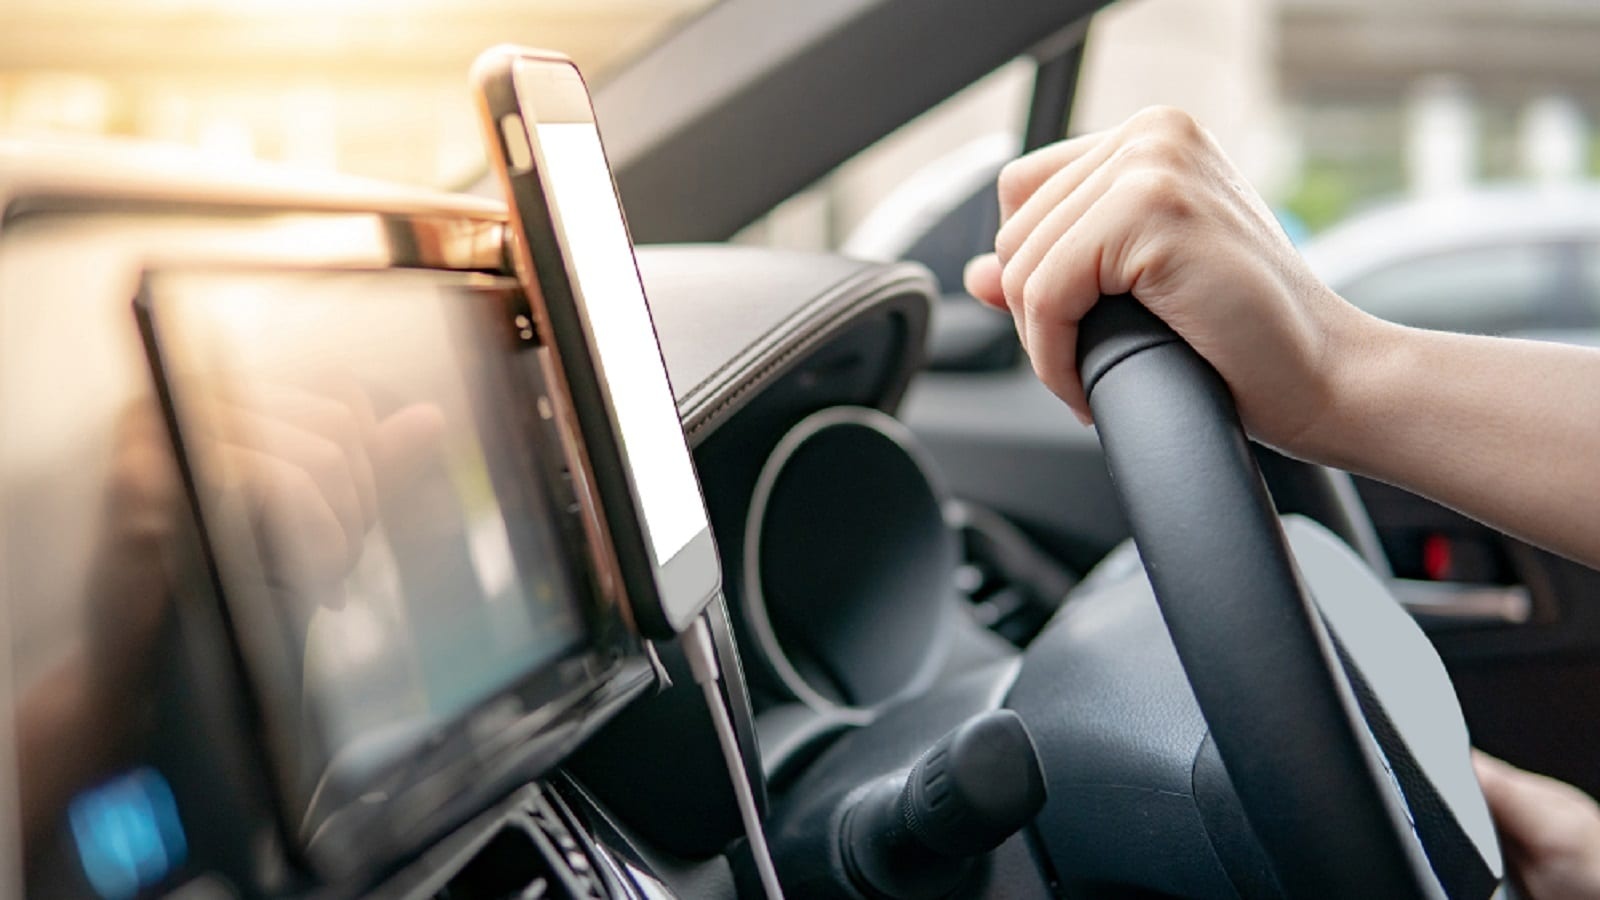 Mobile Device Holder On Dashboard Stock Photo